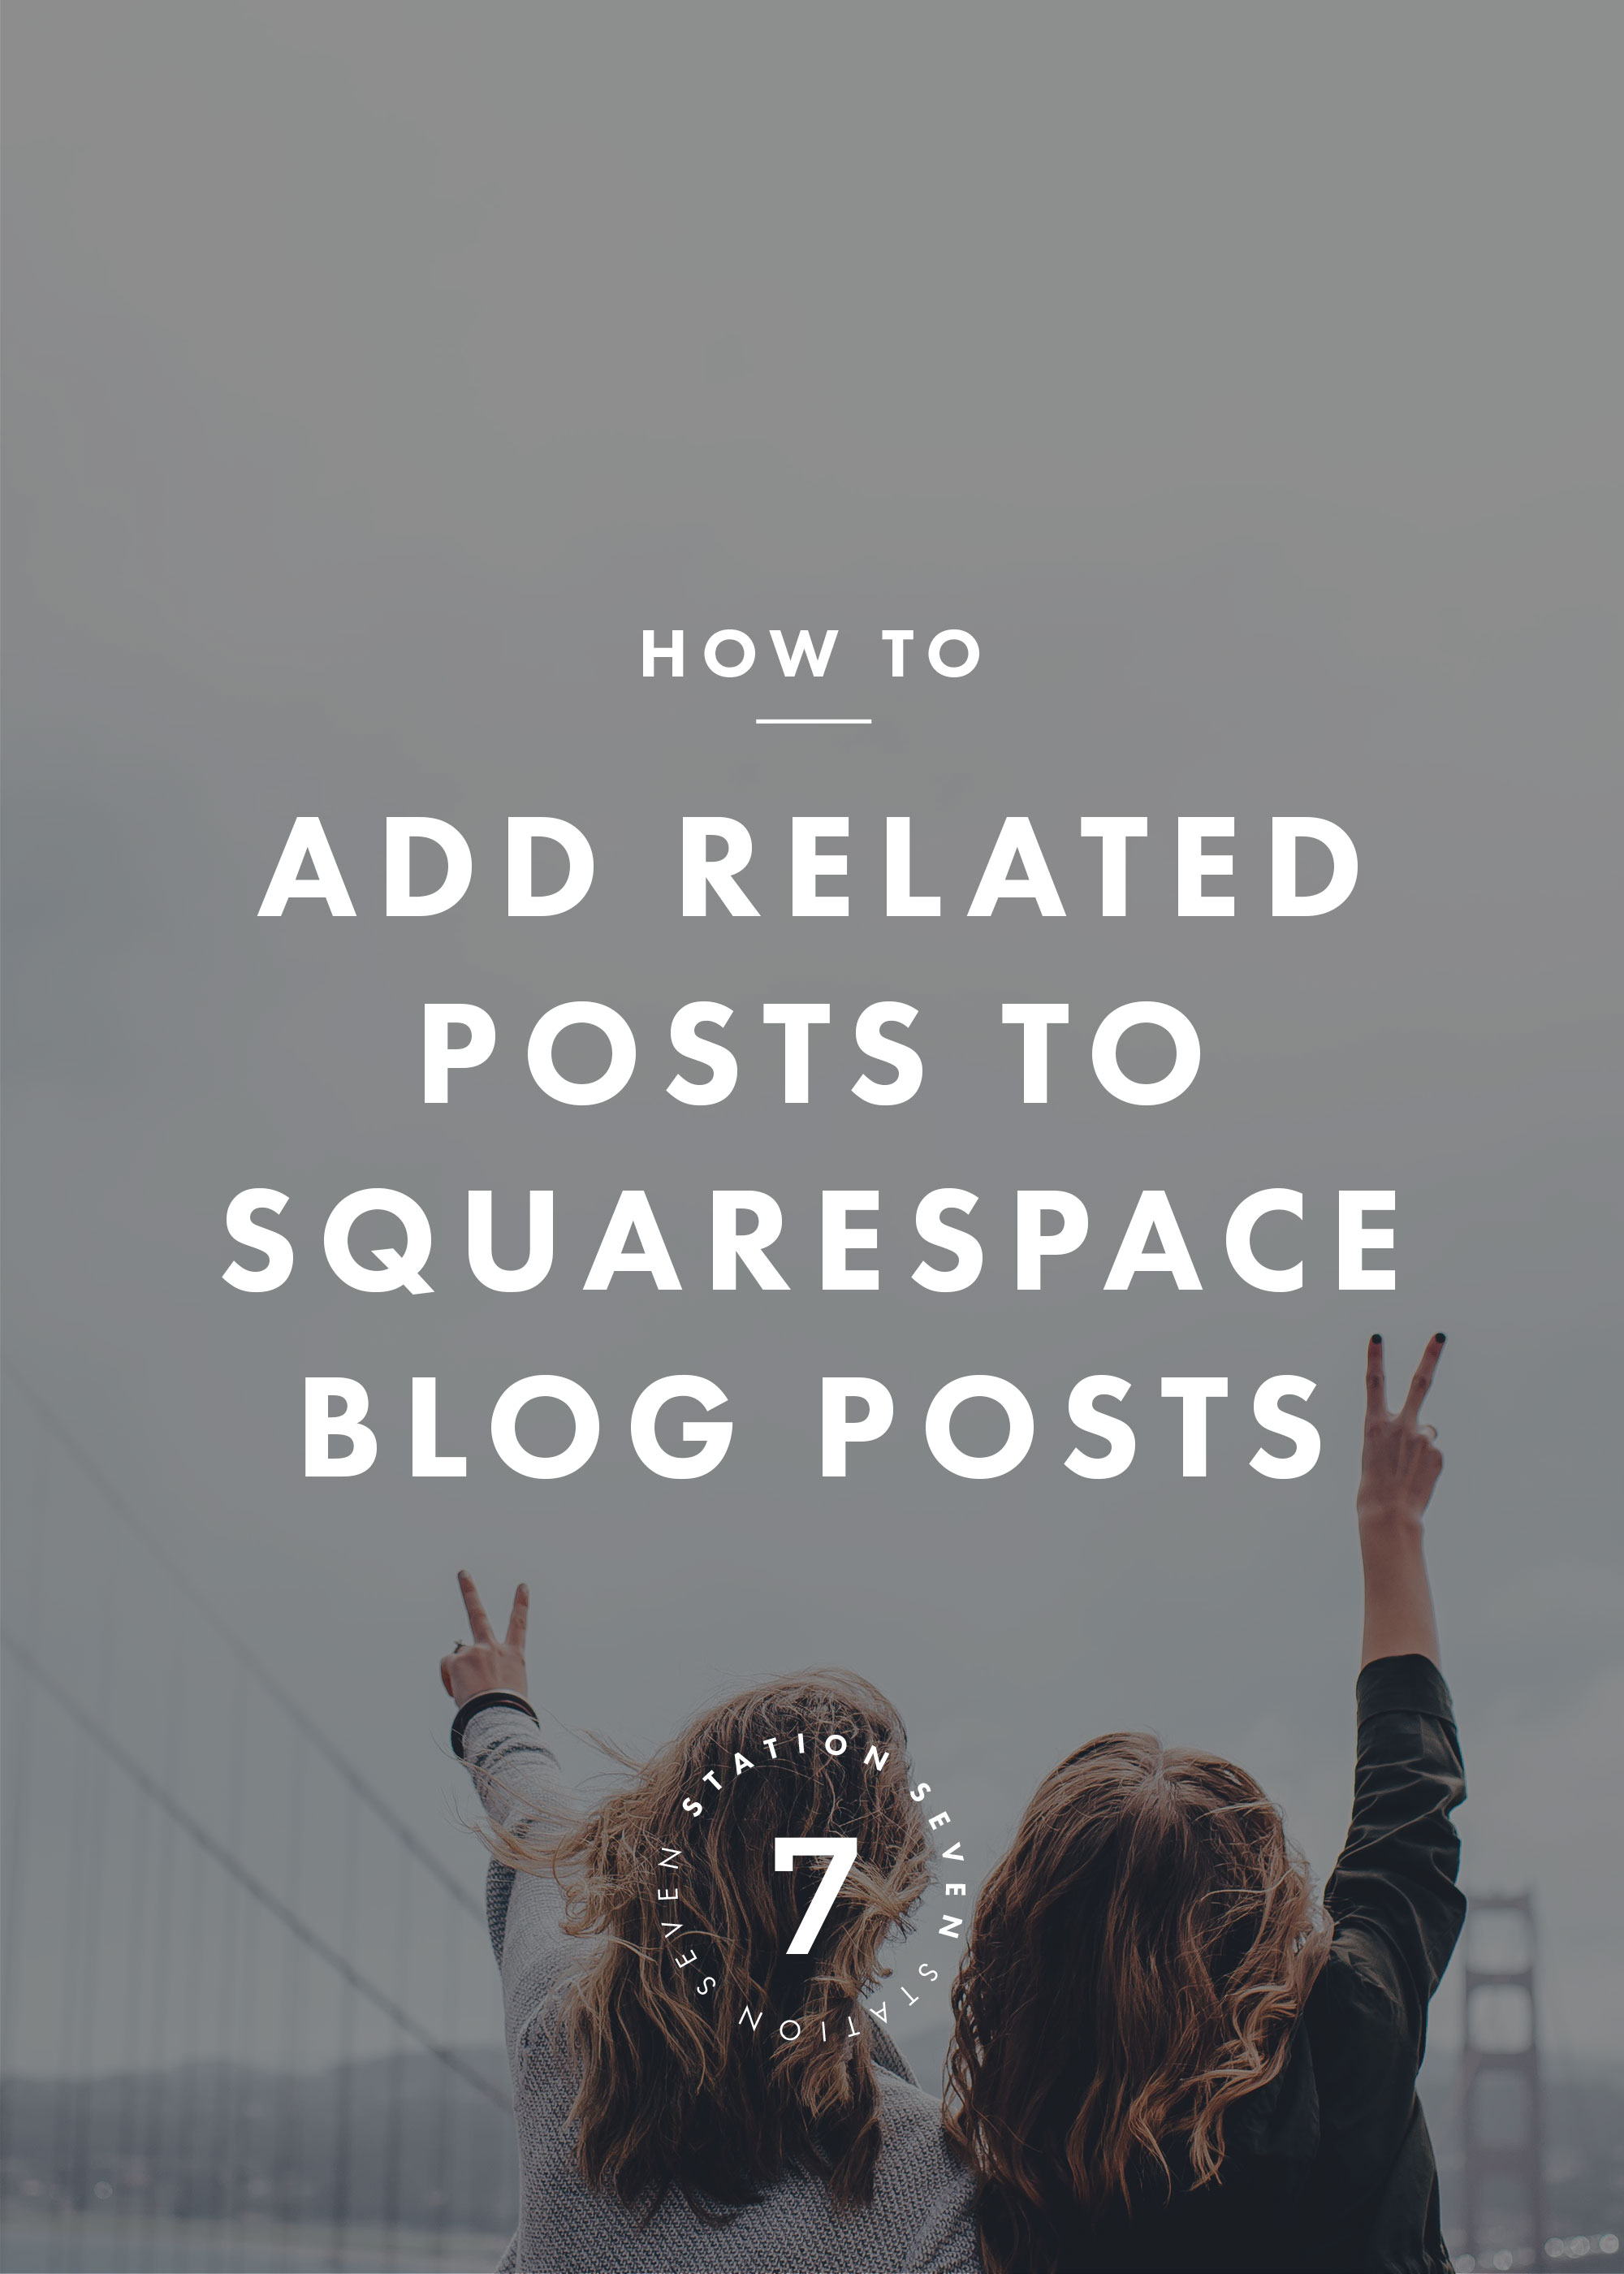 How to Add Related Posts to Squarespace Blog Posts.jpg